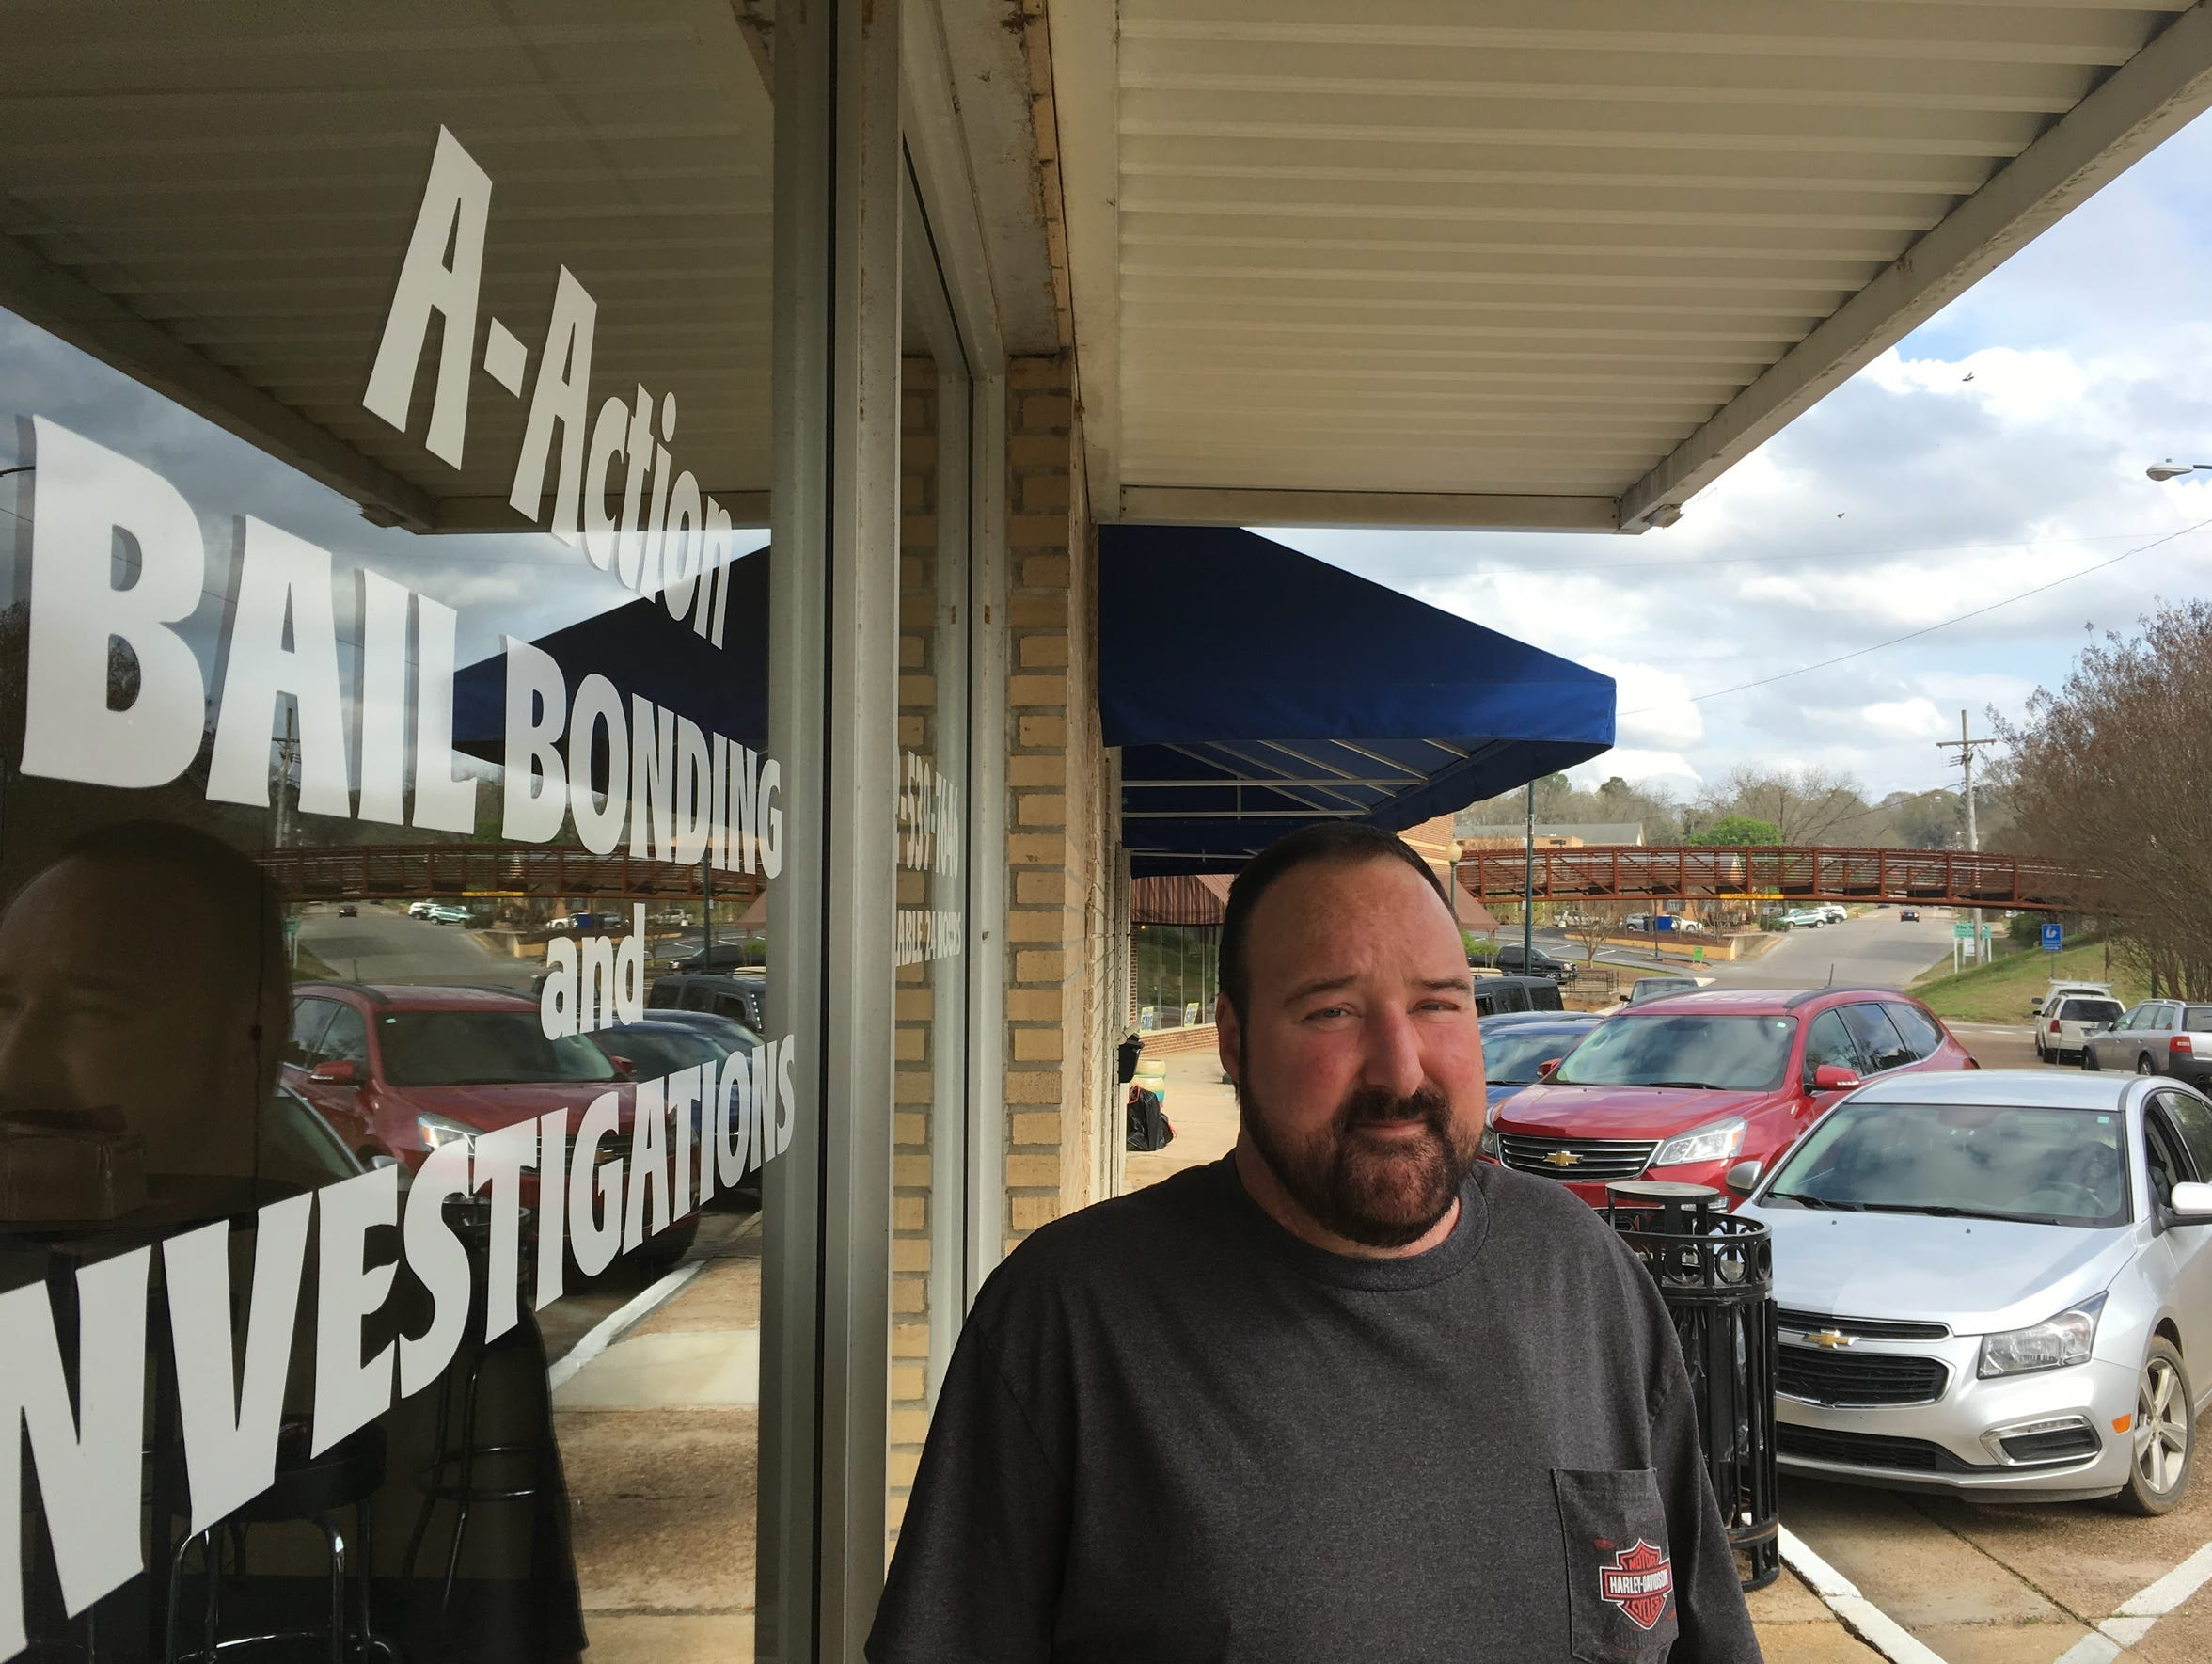 Glyn Holland is one of the few bail bondsmen to criticize